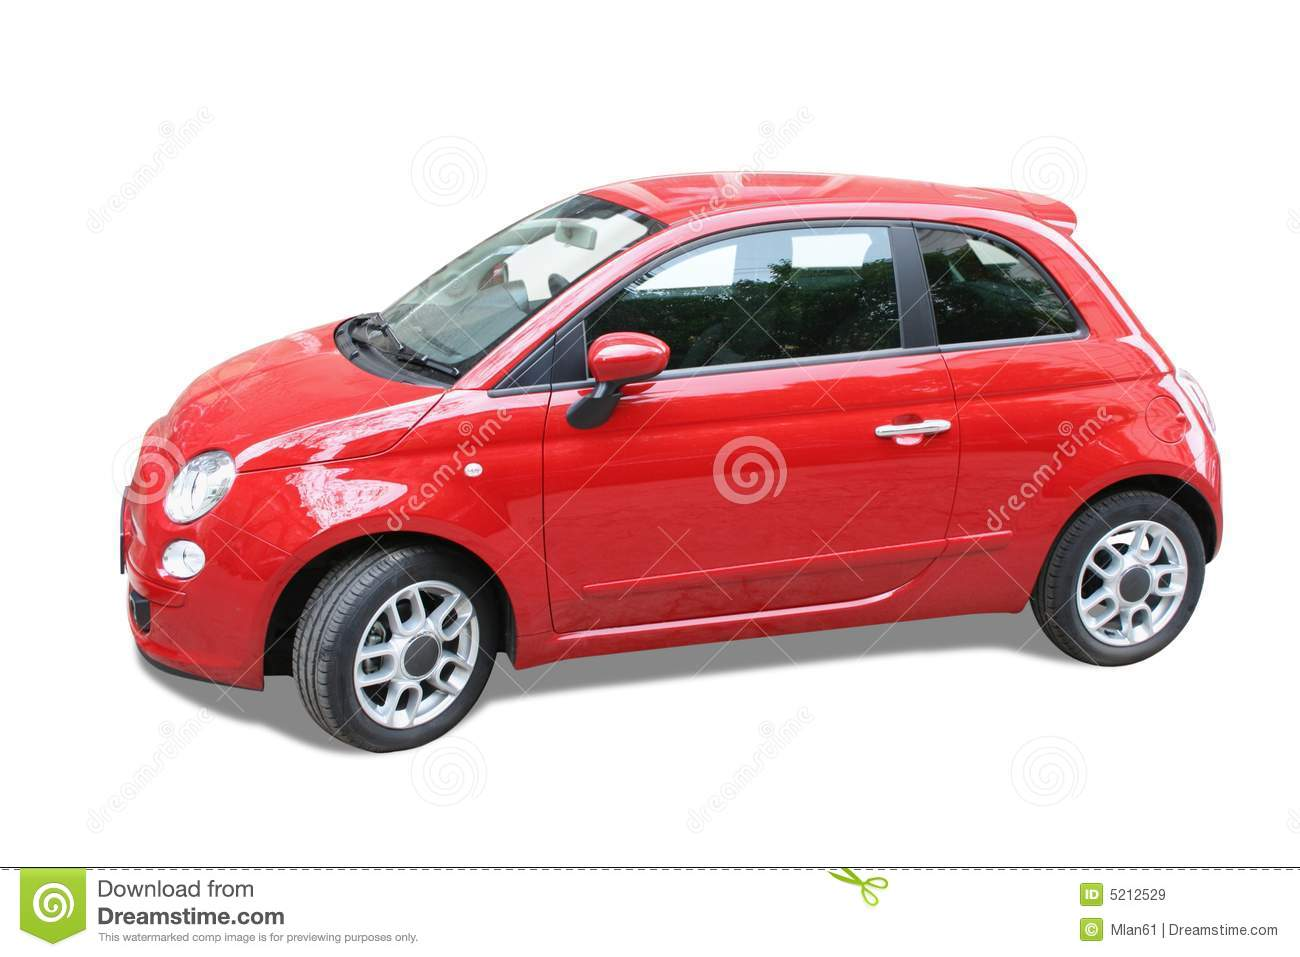 small red car royalty free stock images image 5212529